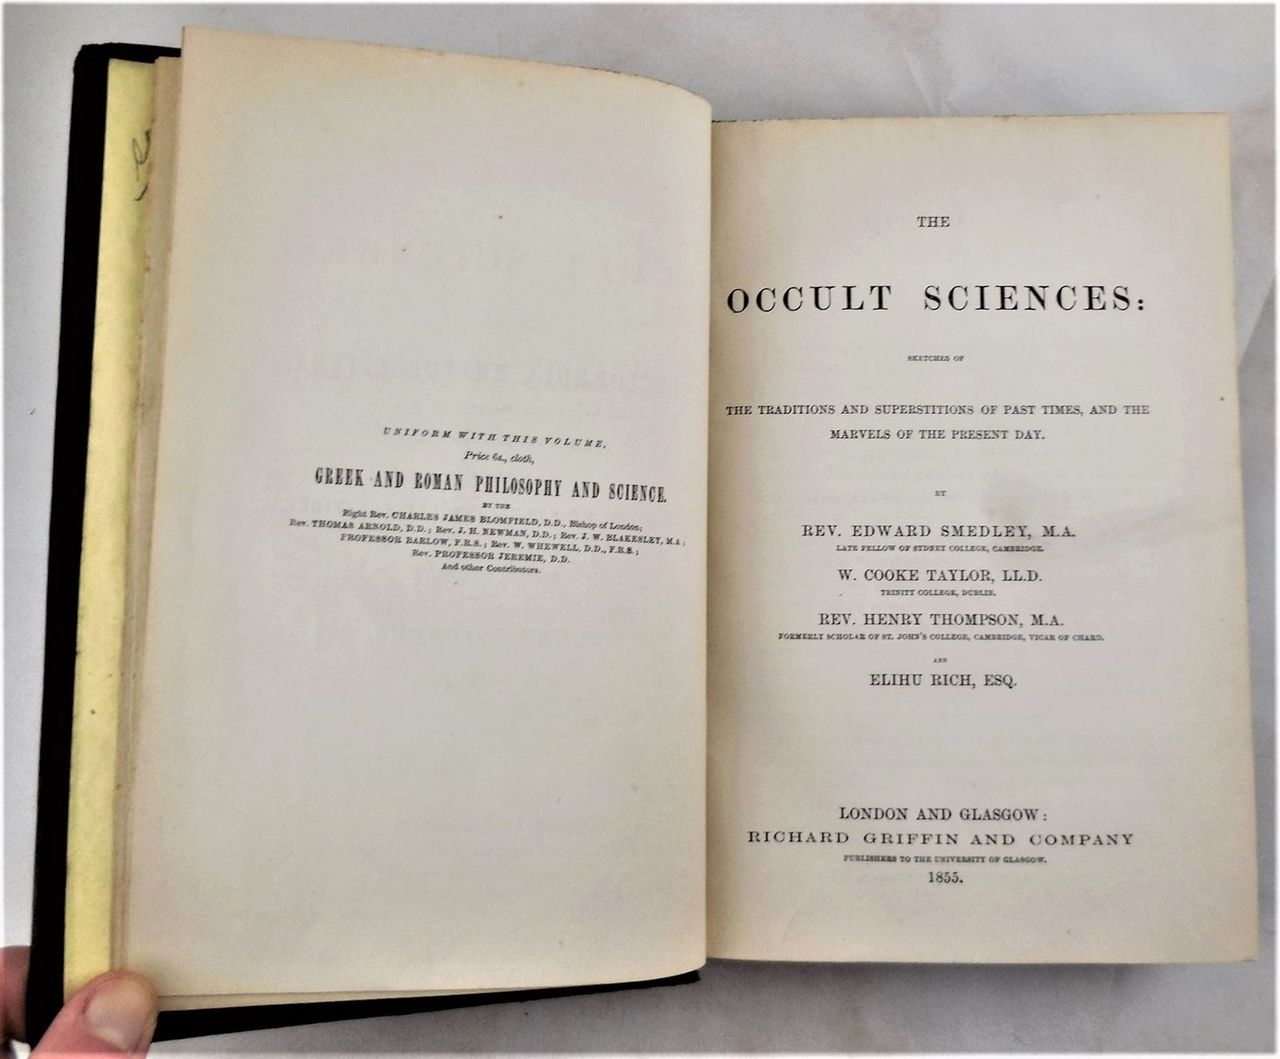 THE OCCULT SCIENCES, Smedley, 1855, occult history, traditions &  superstitions